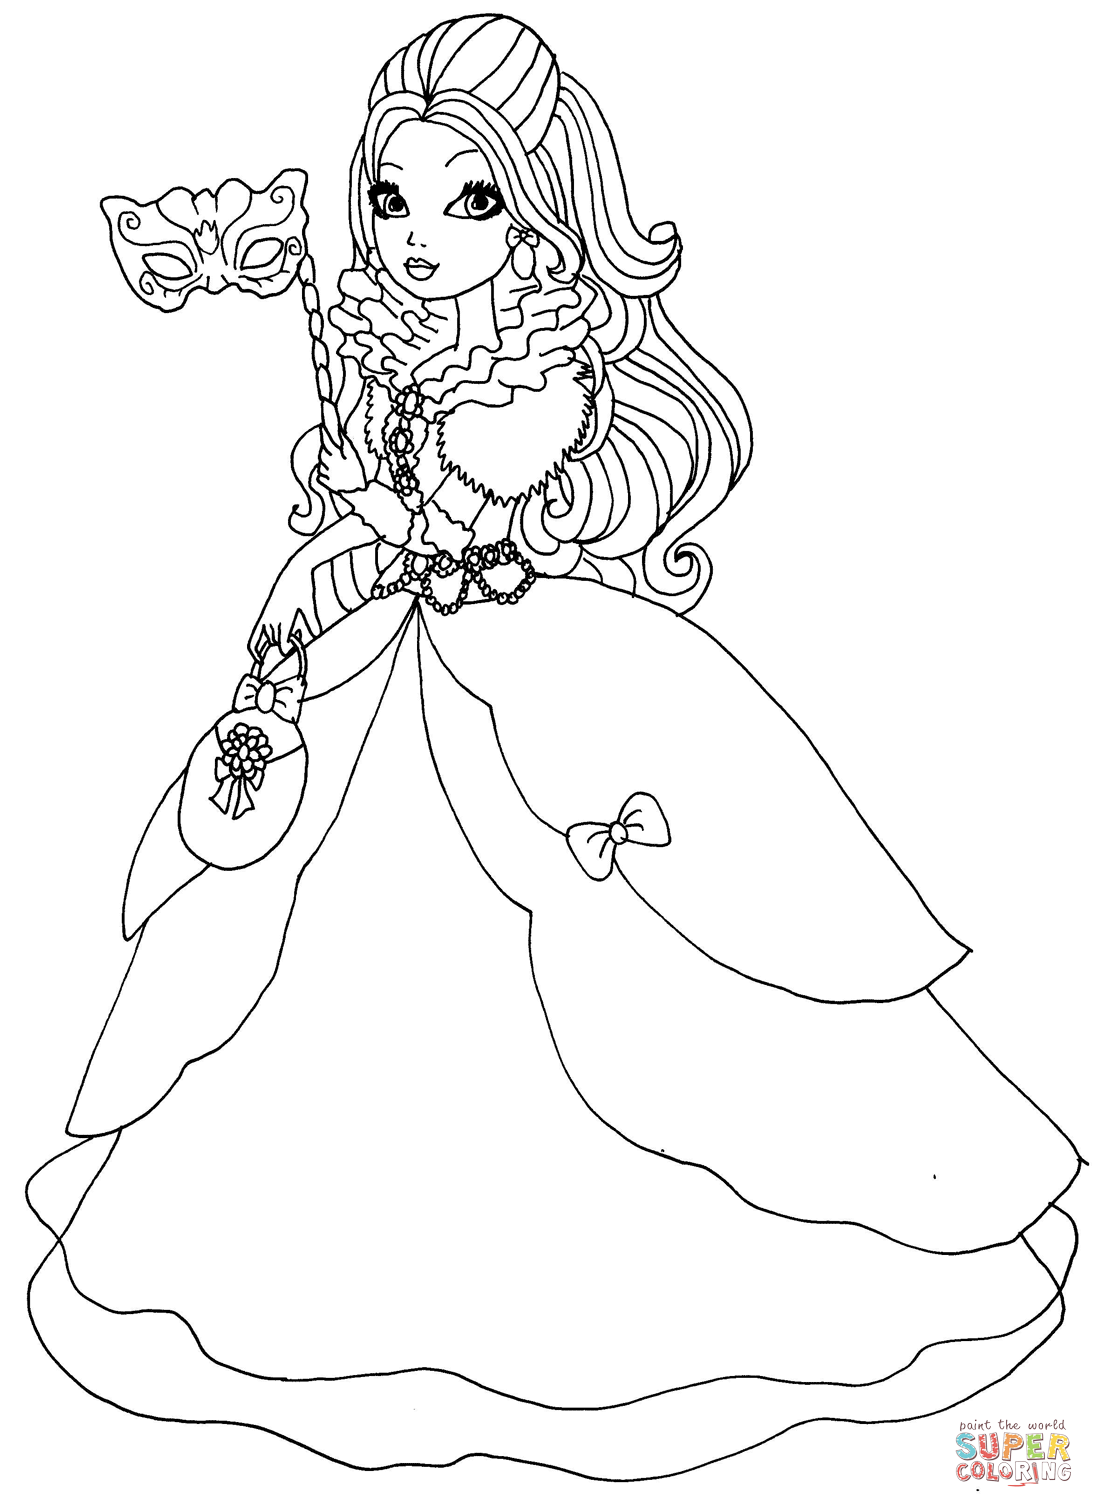 Everafter High Baby Dragon Coloring Page Dibujos Para Colorear De